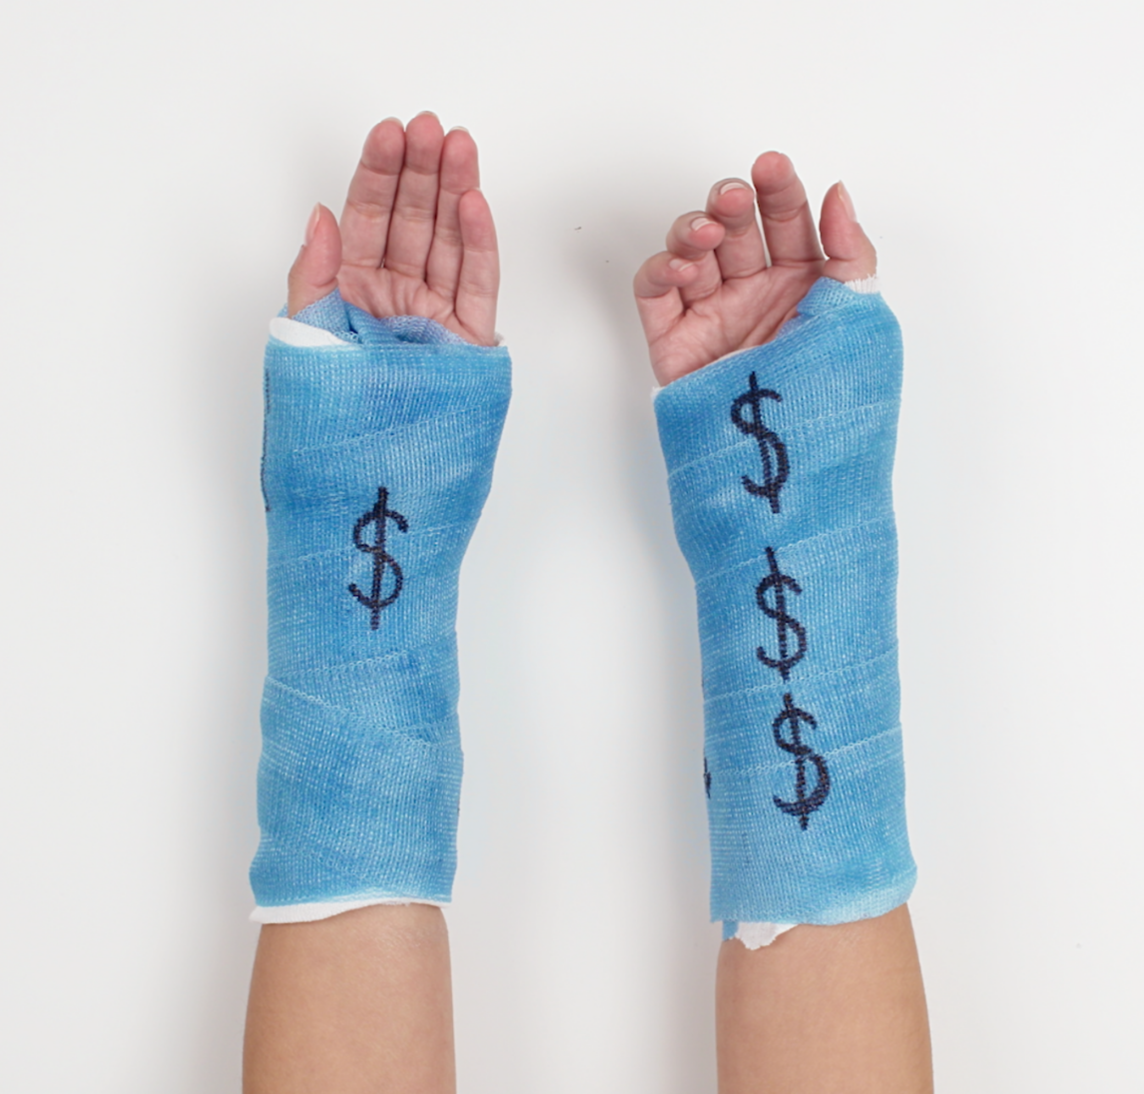 Two arms both in a blue cast with dollar signs drawn on the cast